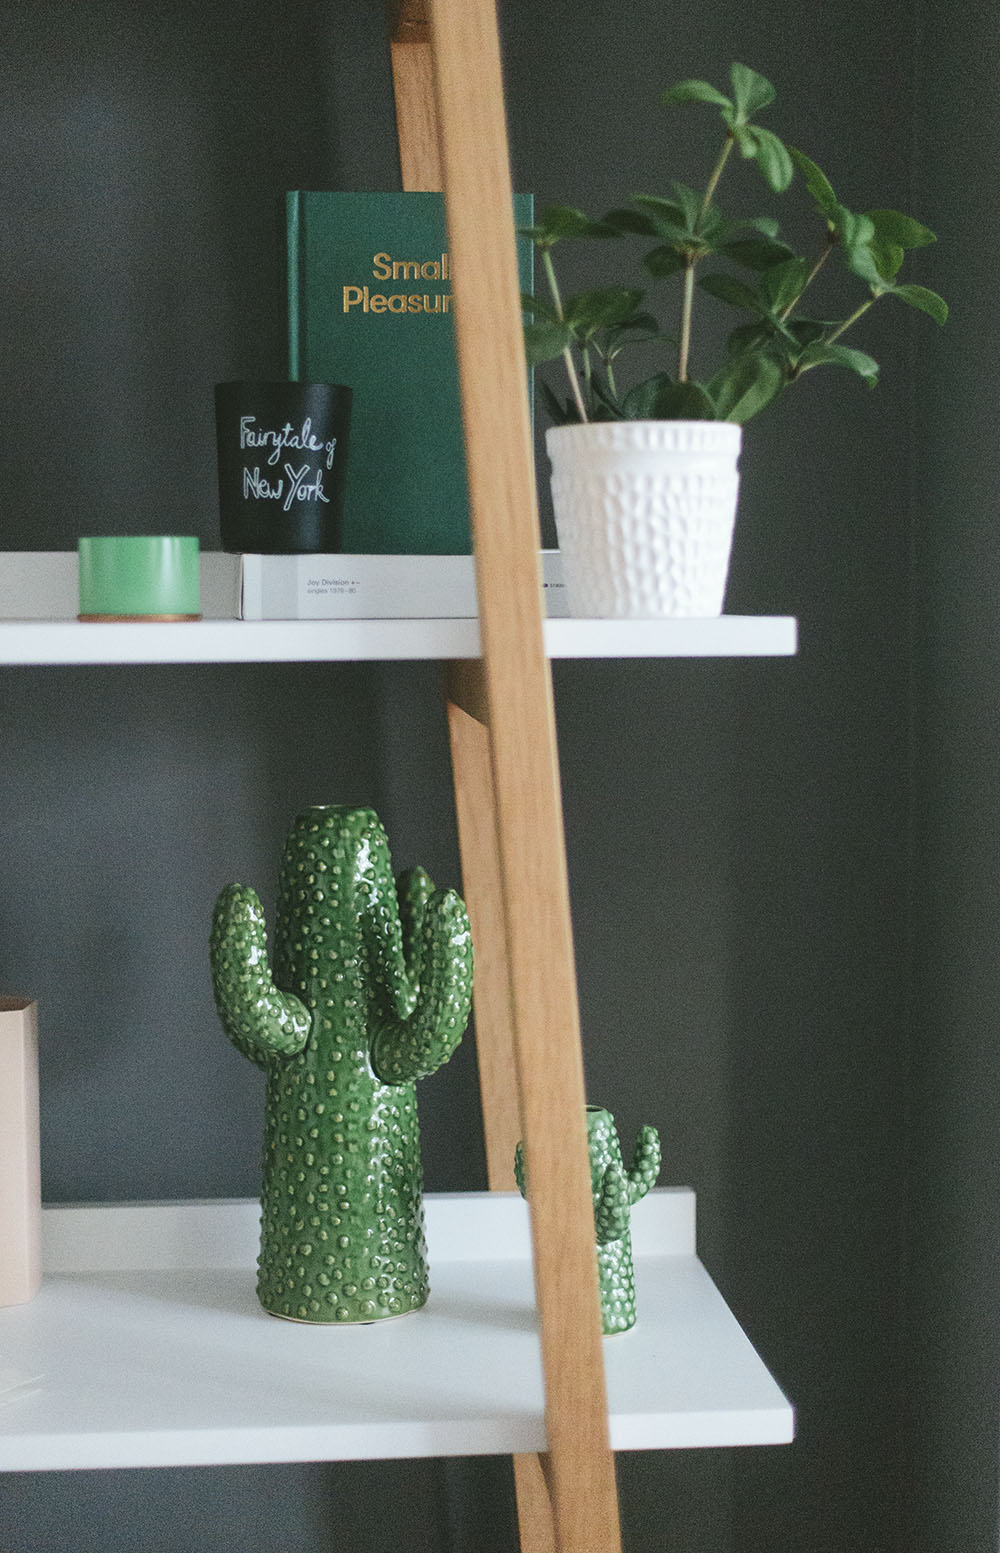 A cactus shaped vase on a shelf with other new home essentials